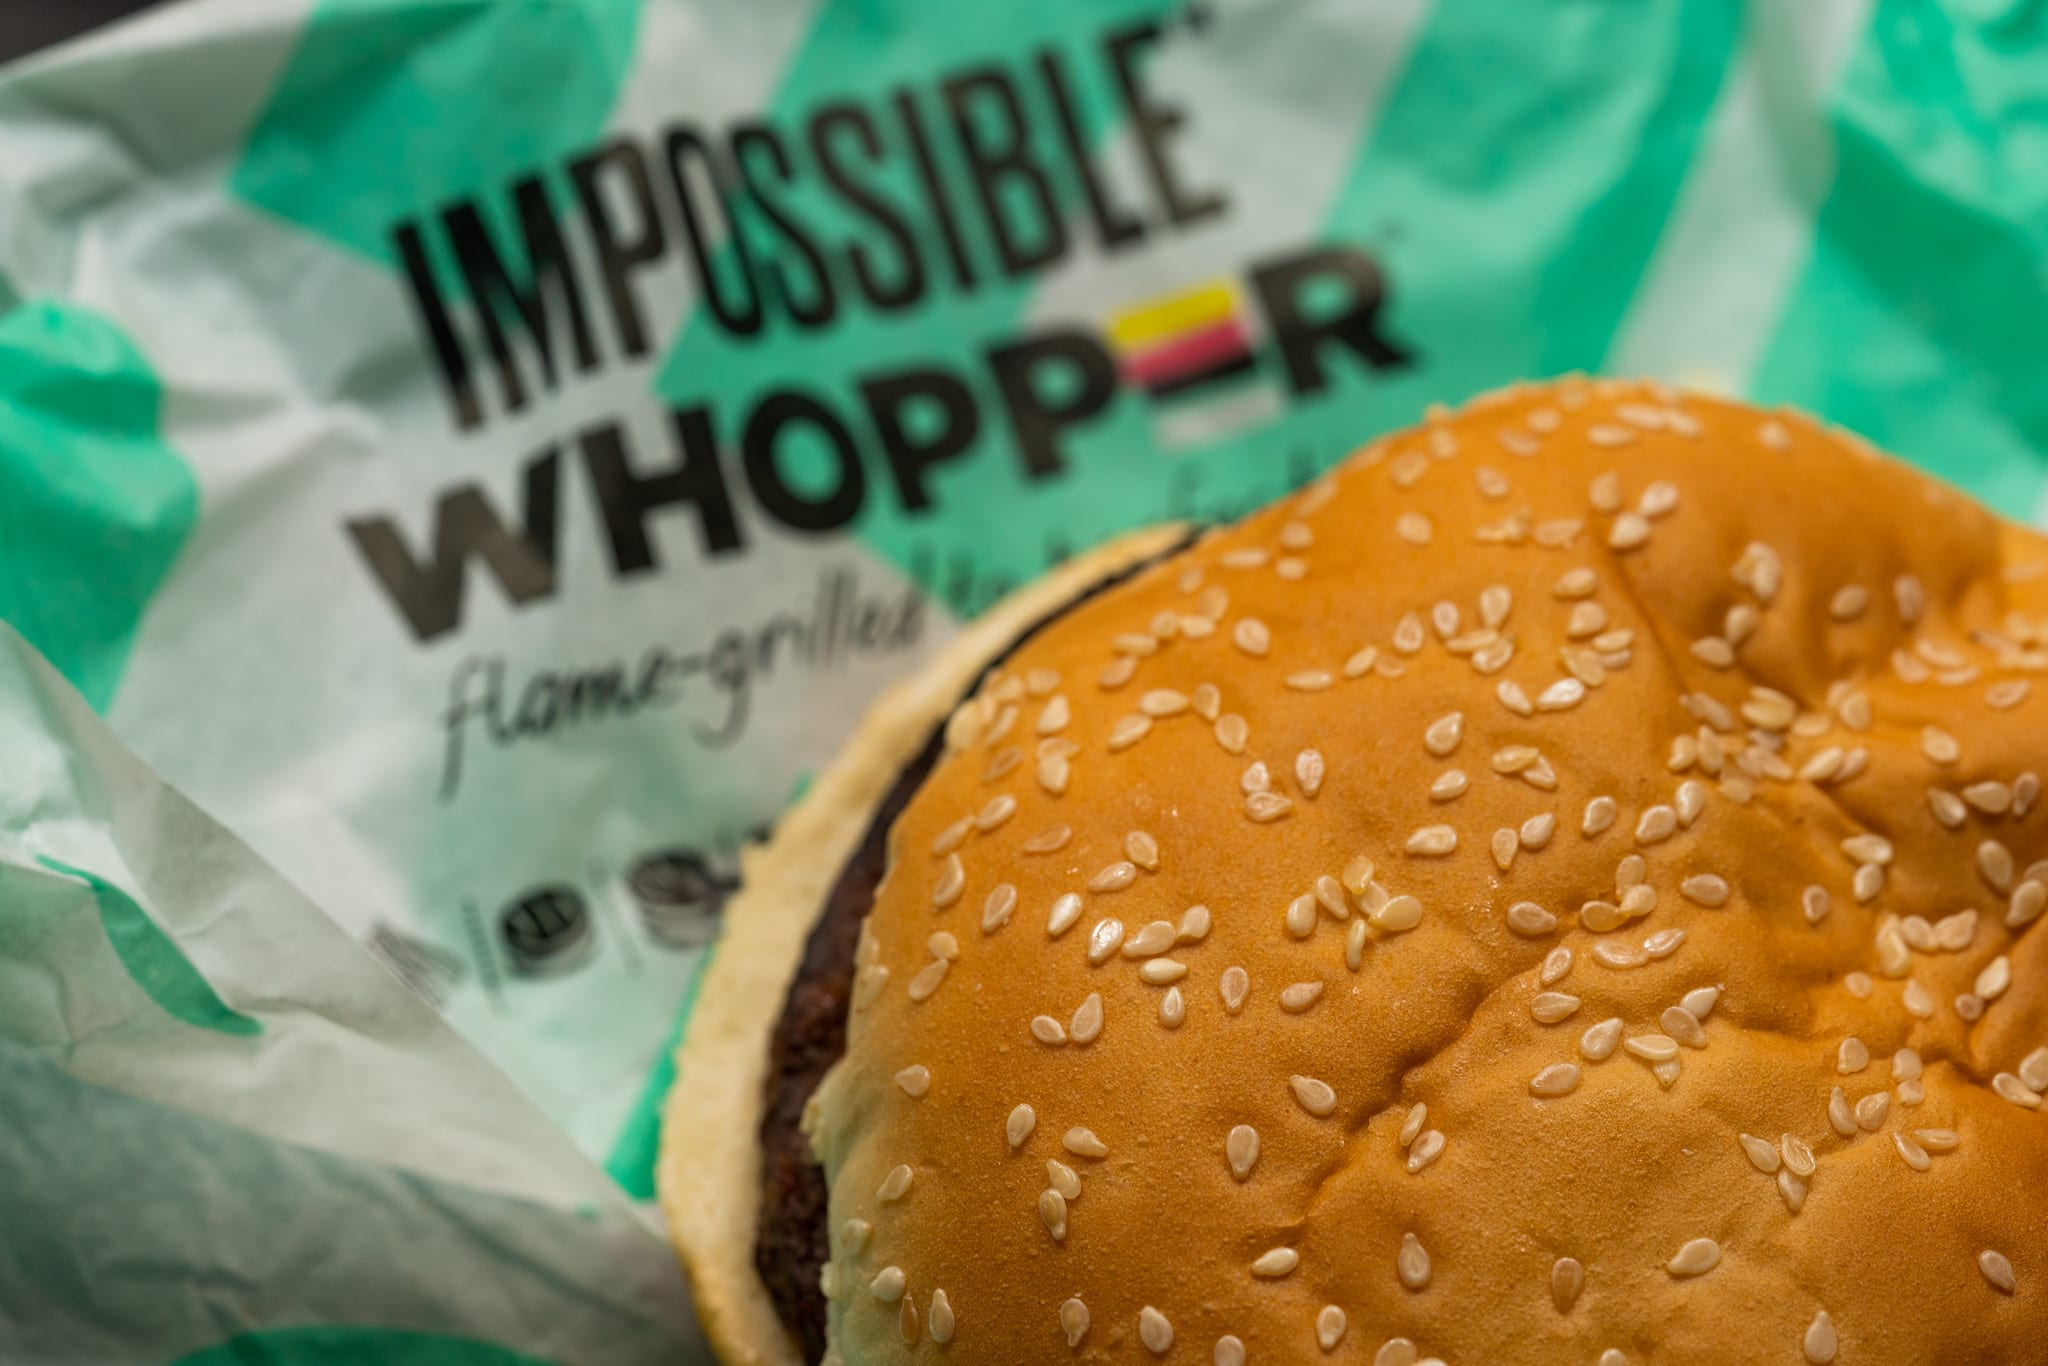 Georgia Vegan Sues Burger King For Cooking Impossible Whopper